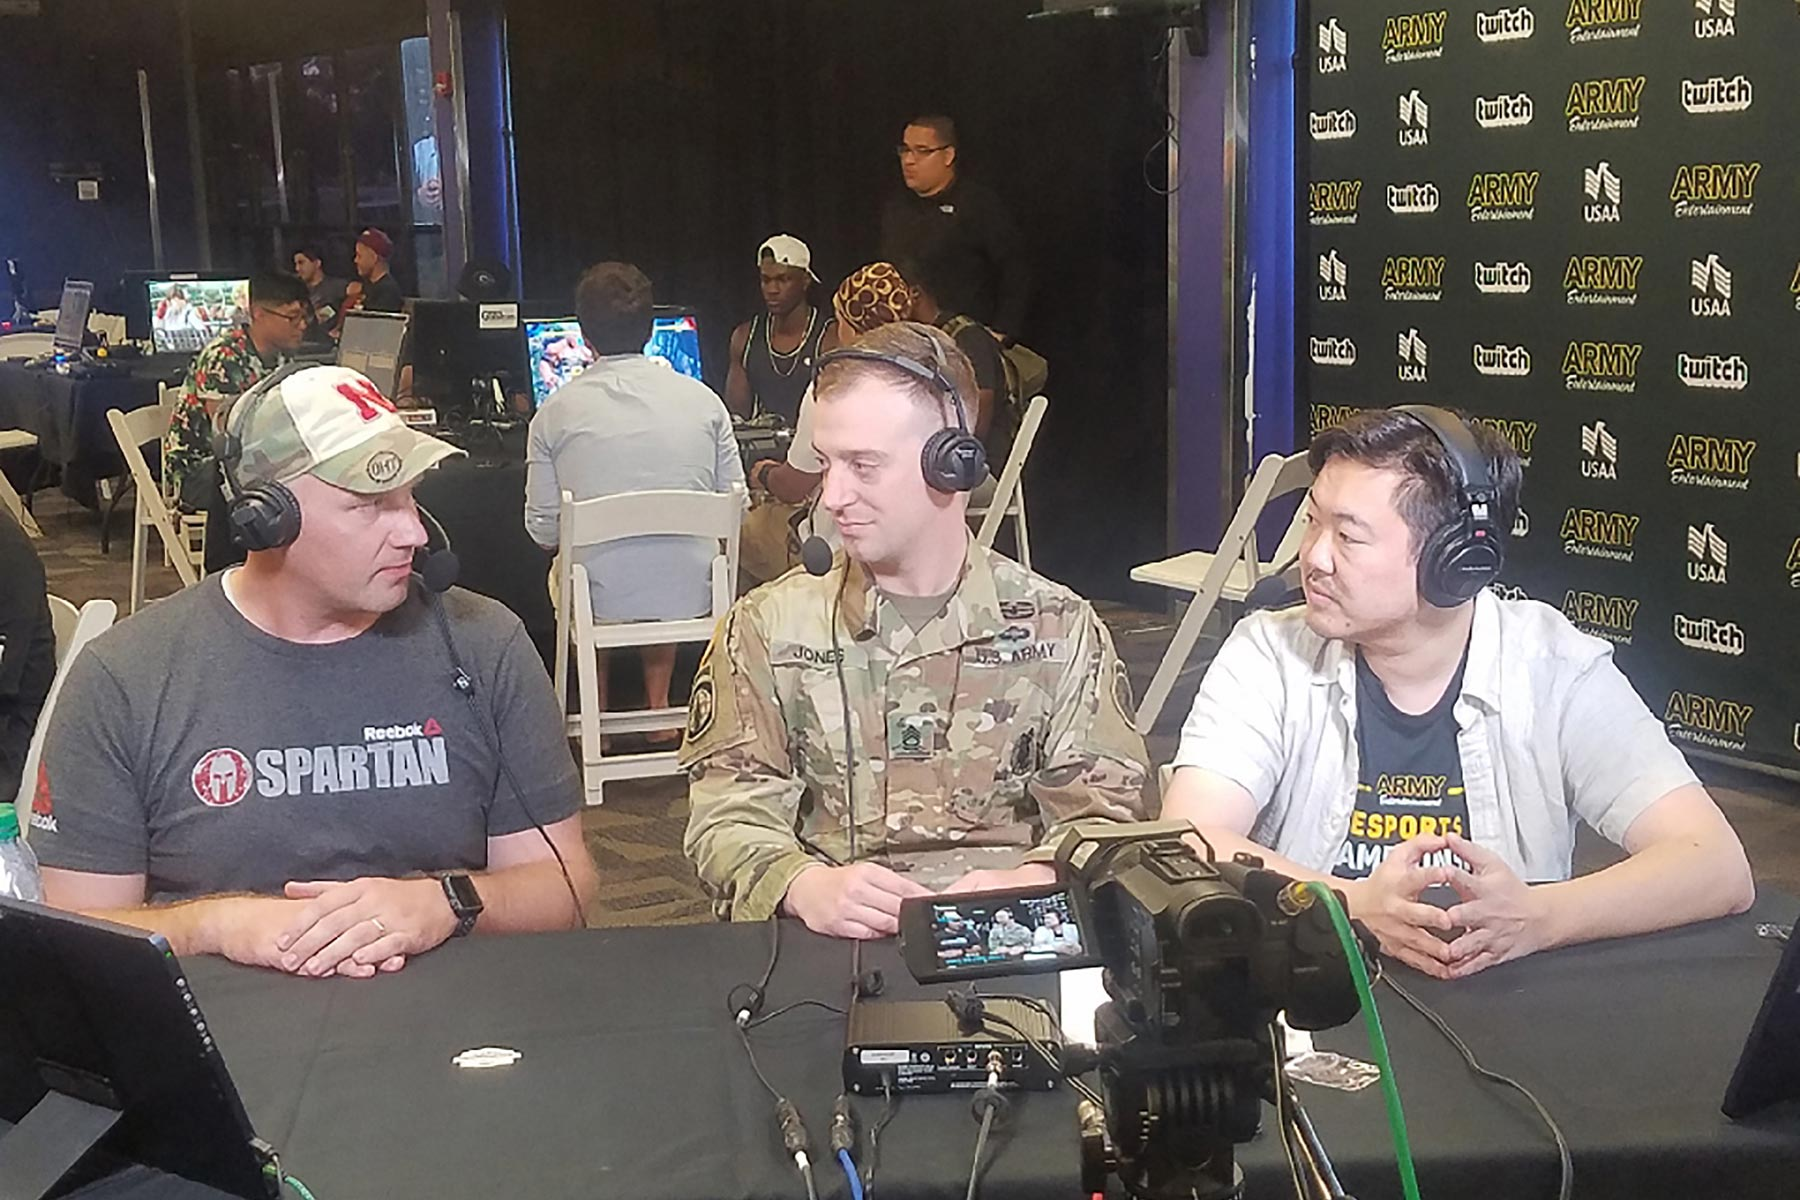 Thousands of Soldiers Sign Up to Game on Army Esports Team ...